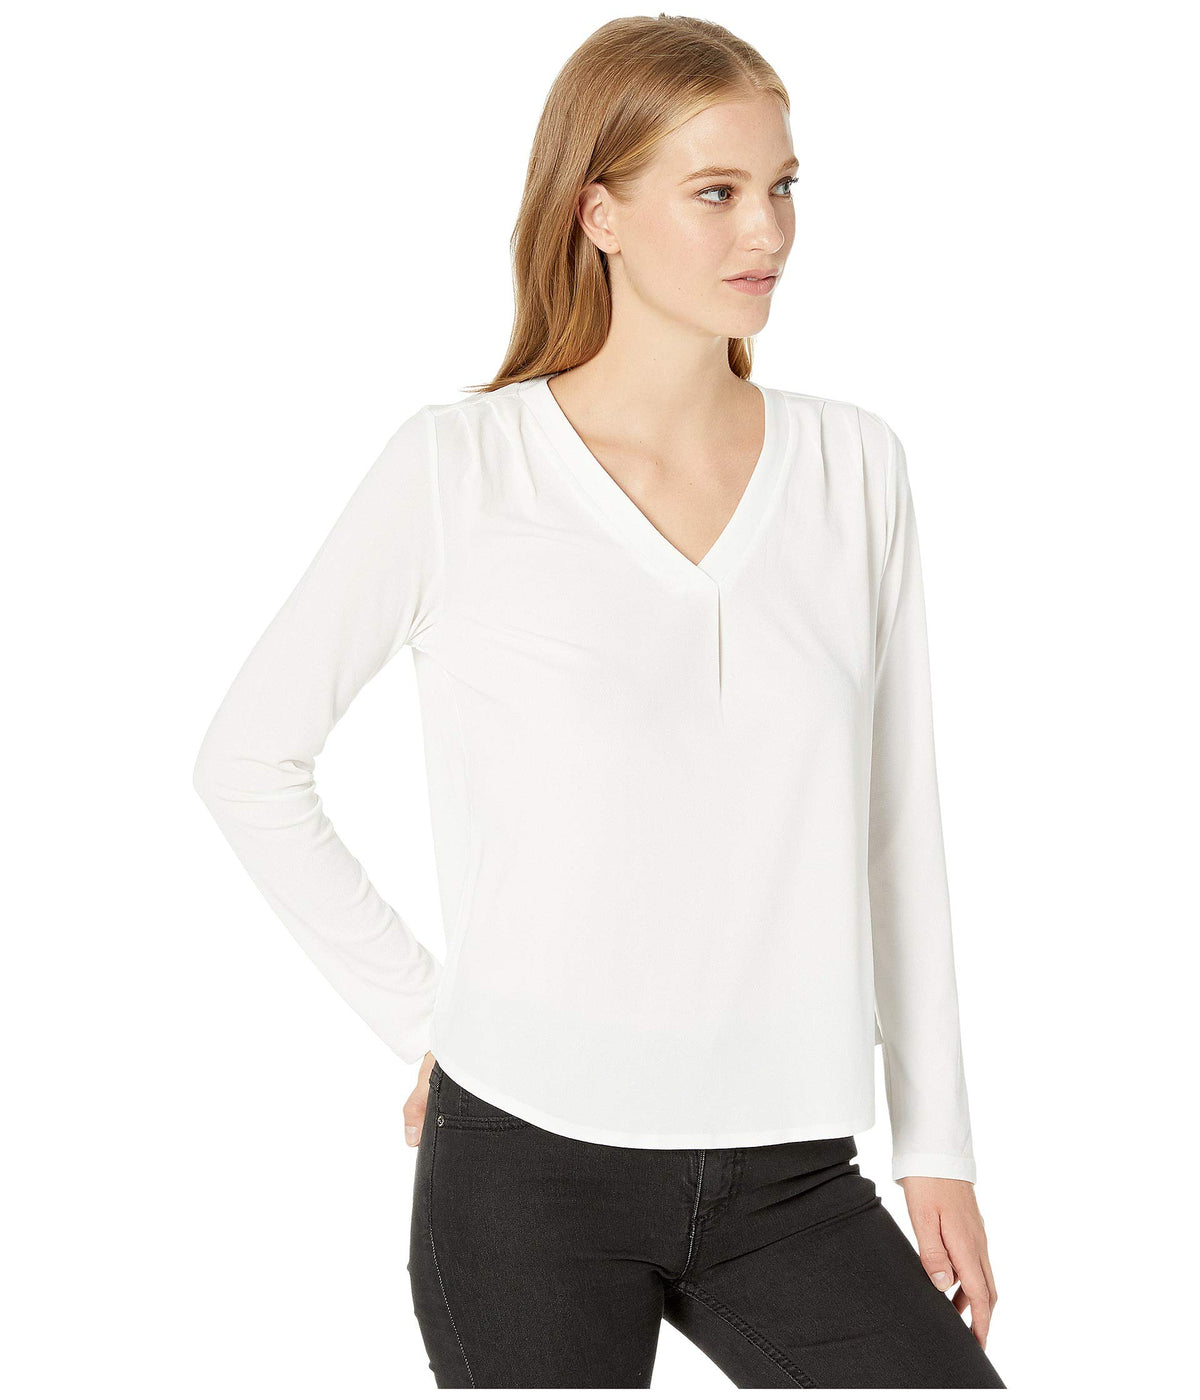 Cambria Crepe Knit Lena Long Sleeve Shirt with Pleats